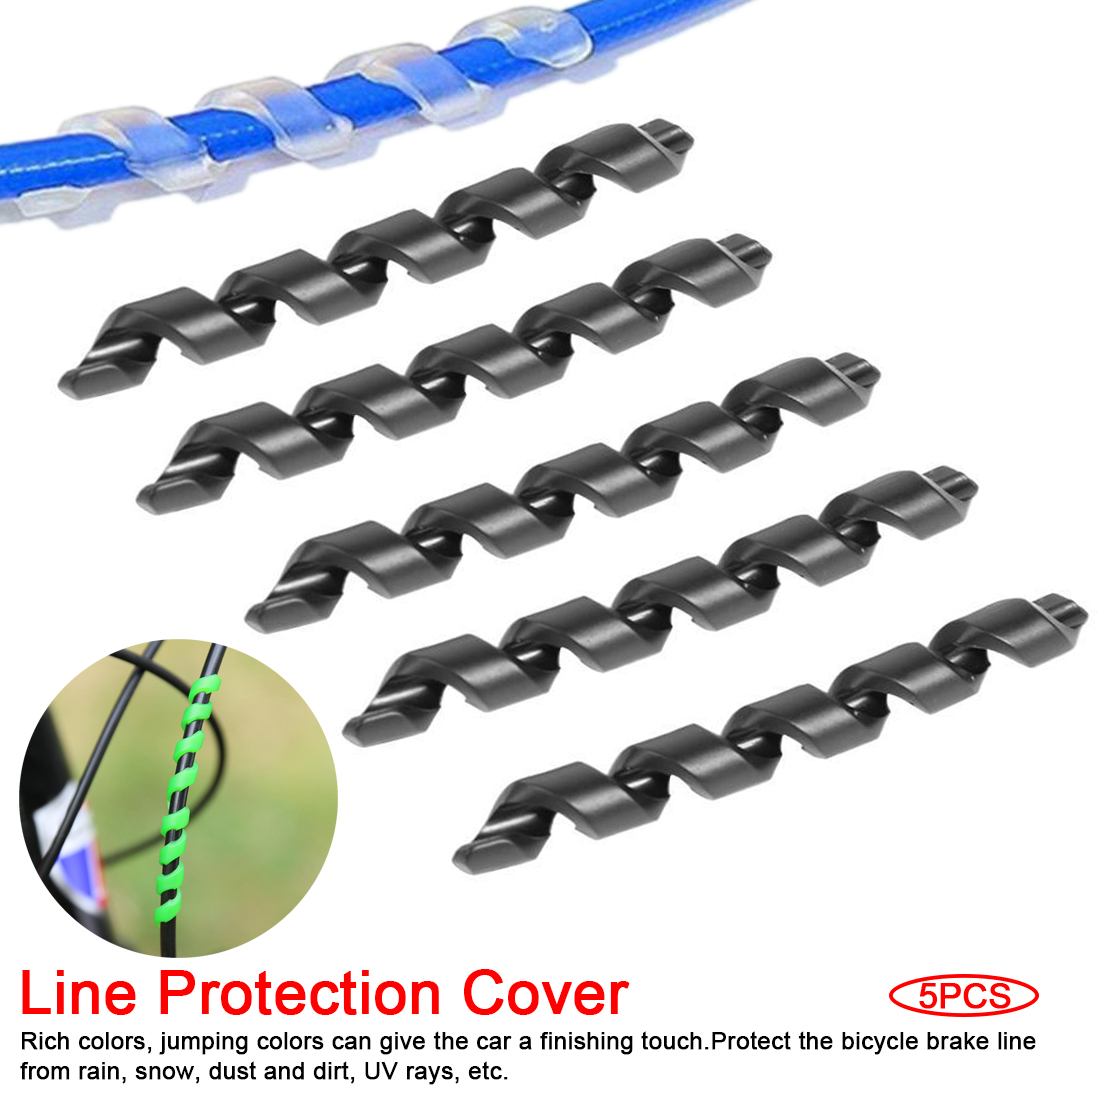 New Bike Cover Protection Guards Brake Line Protector Care Cycling Bicycle Accessories Rubber Sleeve